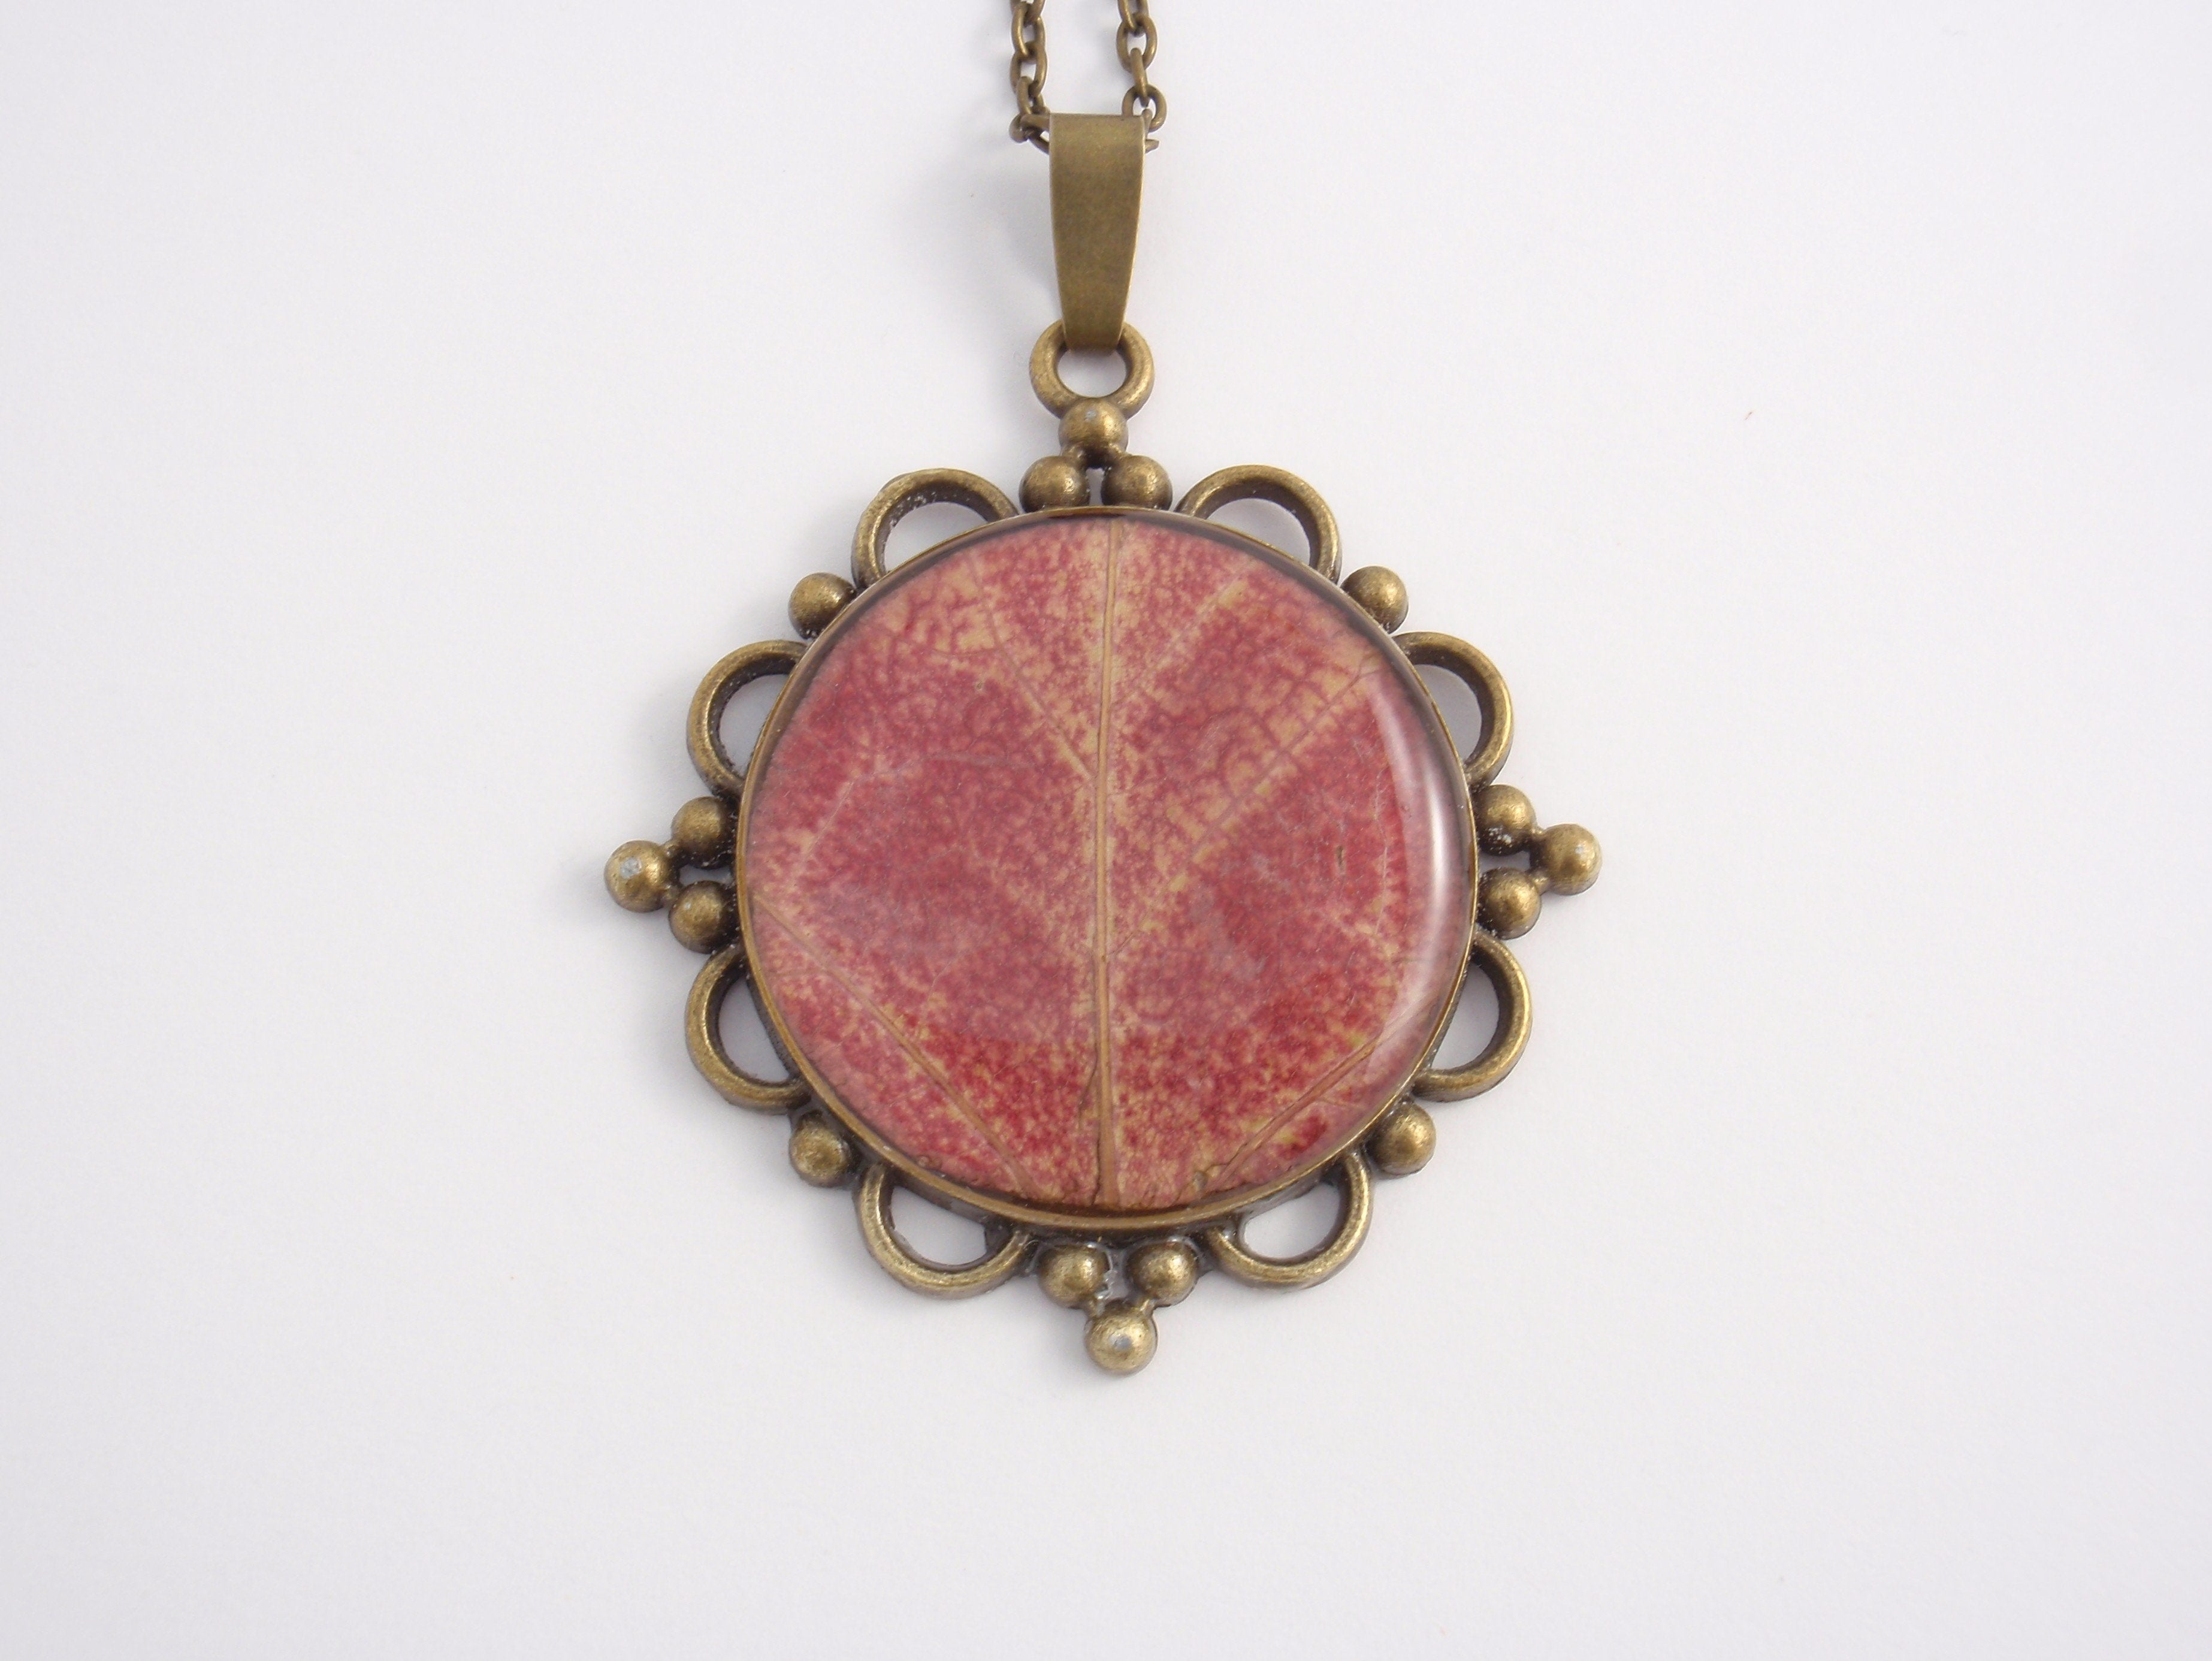 """Early Autumn"" - a real autumn maple leaf pendant on a long antique bronze chain"